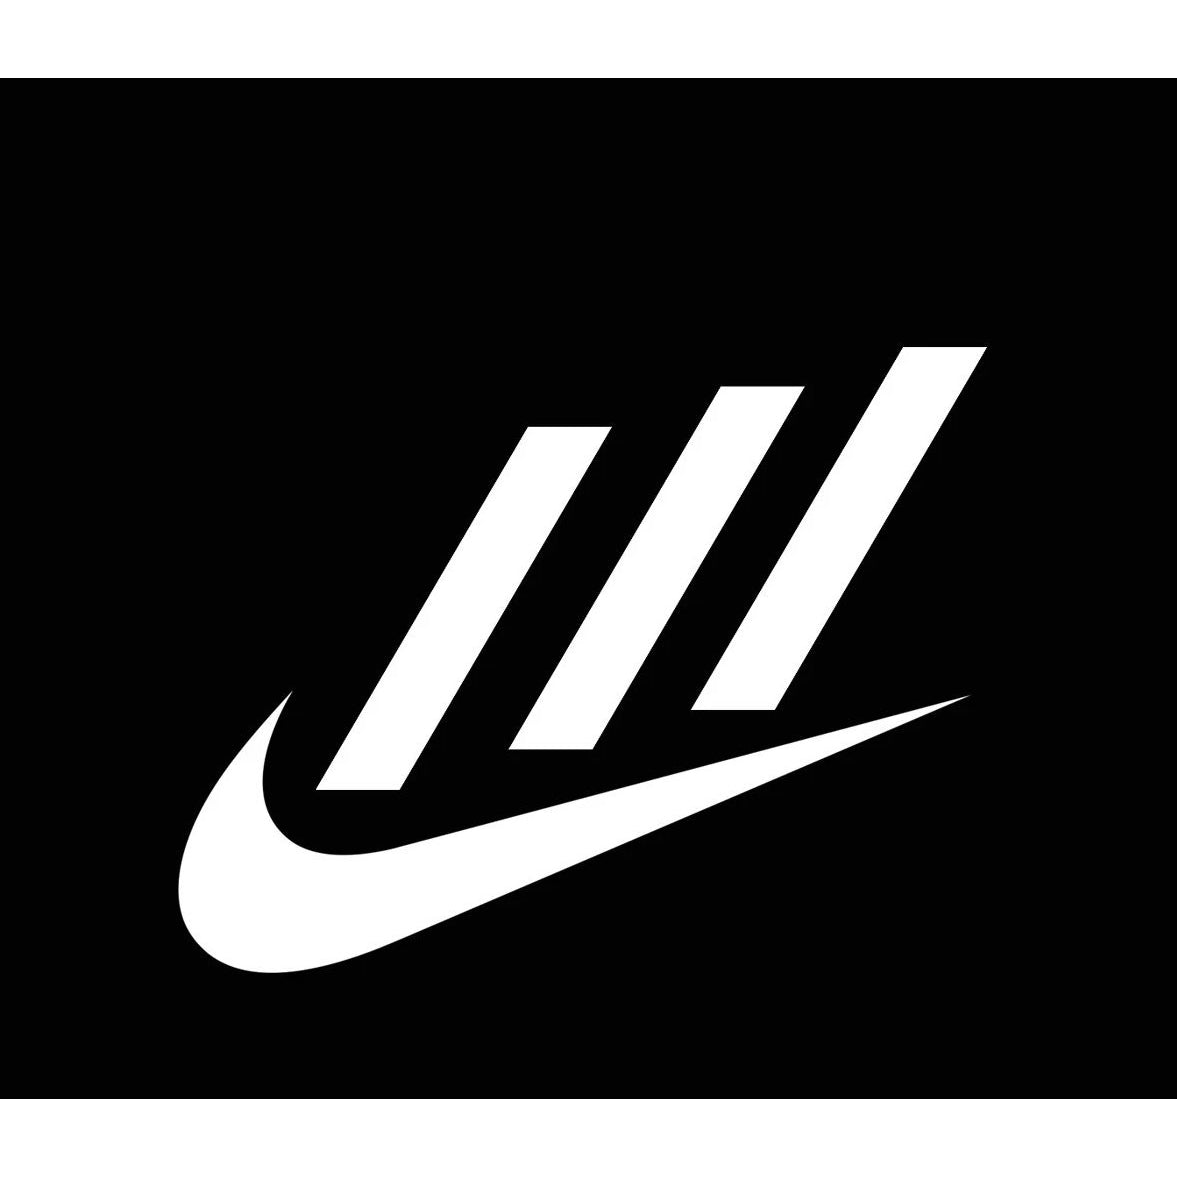 Caso Alarmante bueno  Adidas x Nike Collab Logo Iron-on Sticker (heat transfer) – customeazy